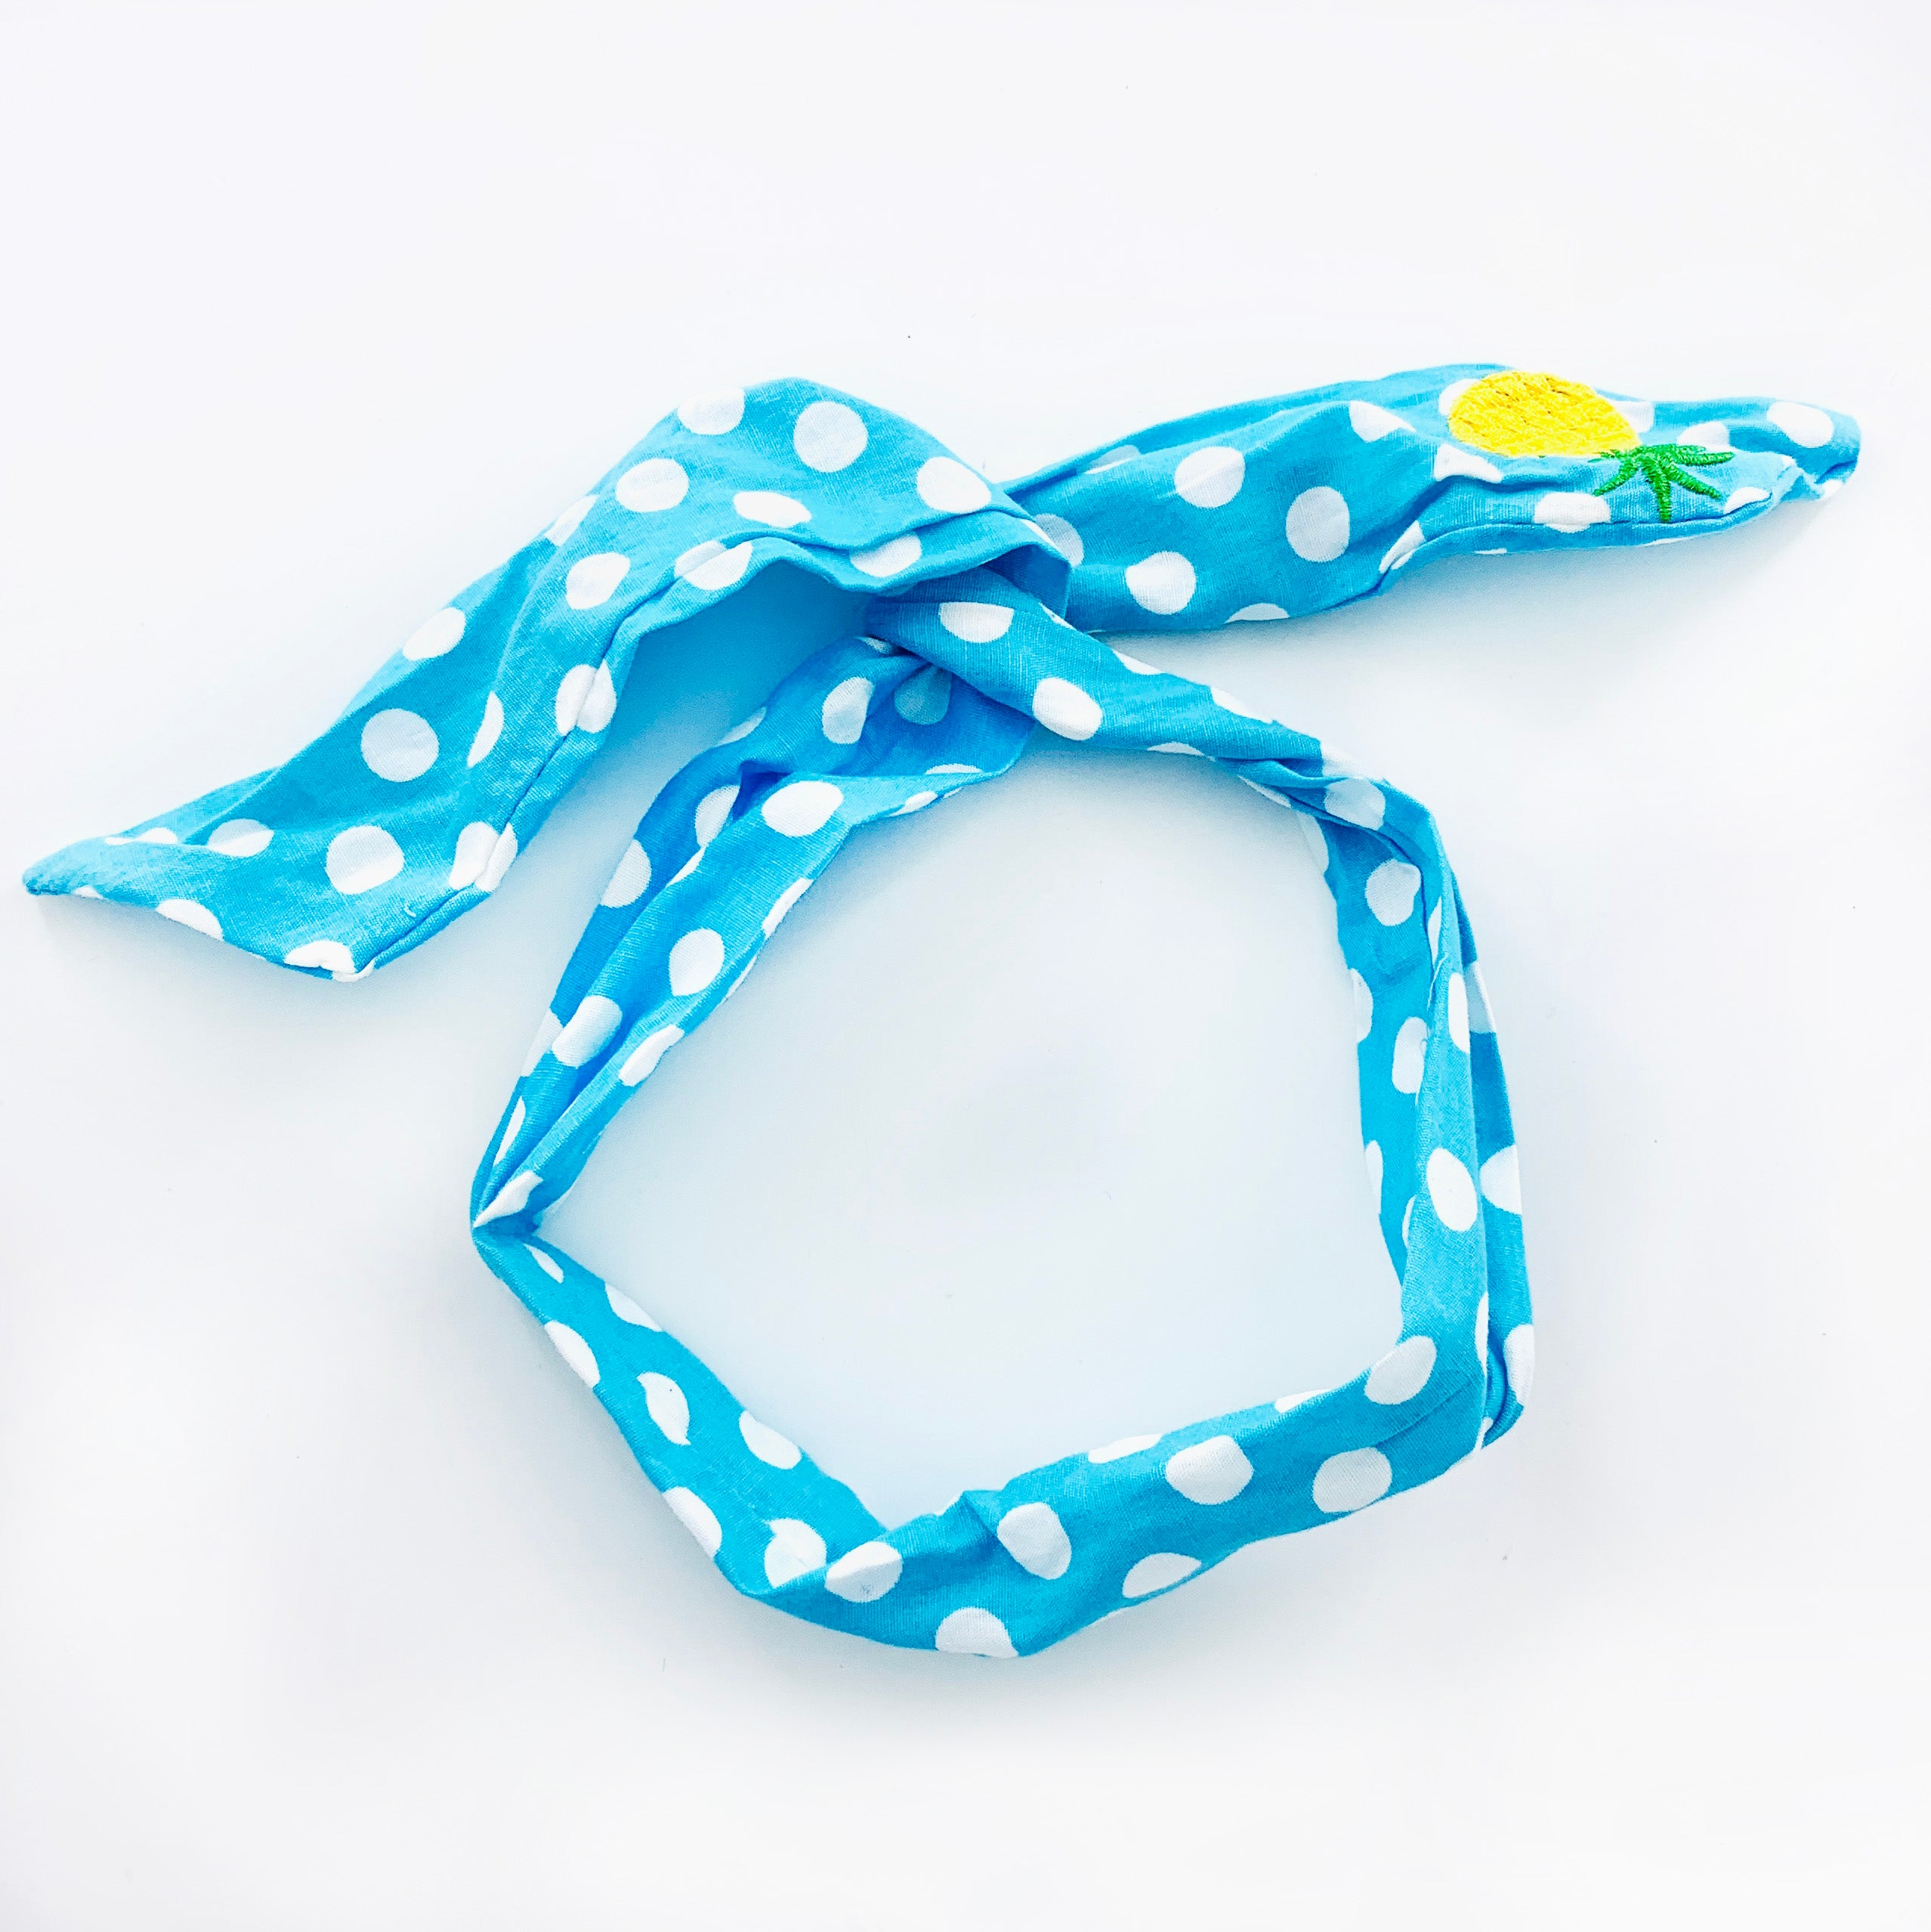 Blue polka-dot wired hairband with embroidered pineapple